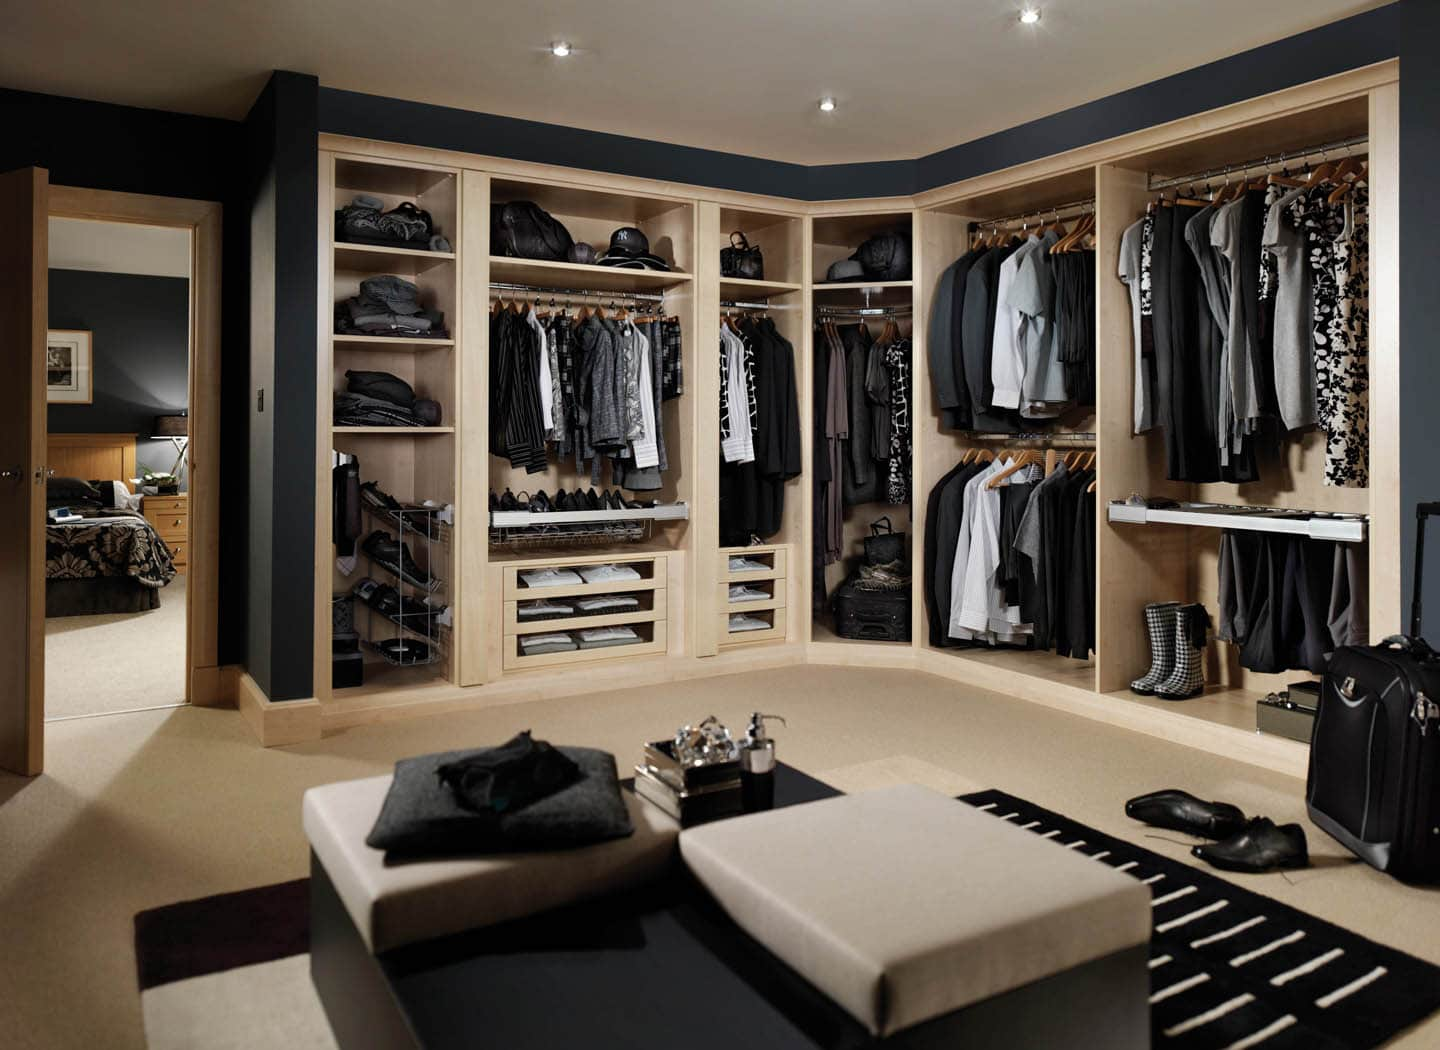 bespoke luxury fitted dressing rooms designs handcrafted by strachan. Black Bedroom Furniture Sets. Home Design Ideas